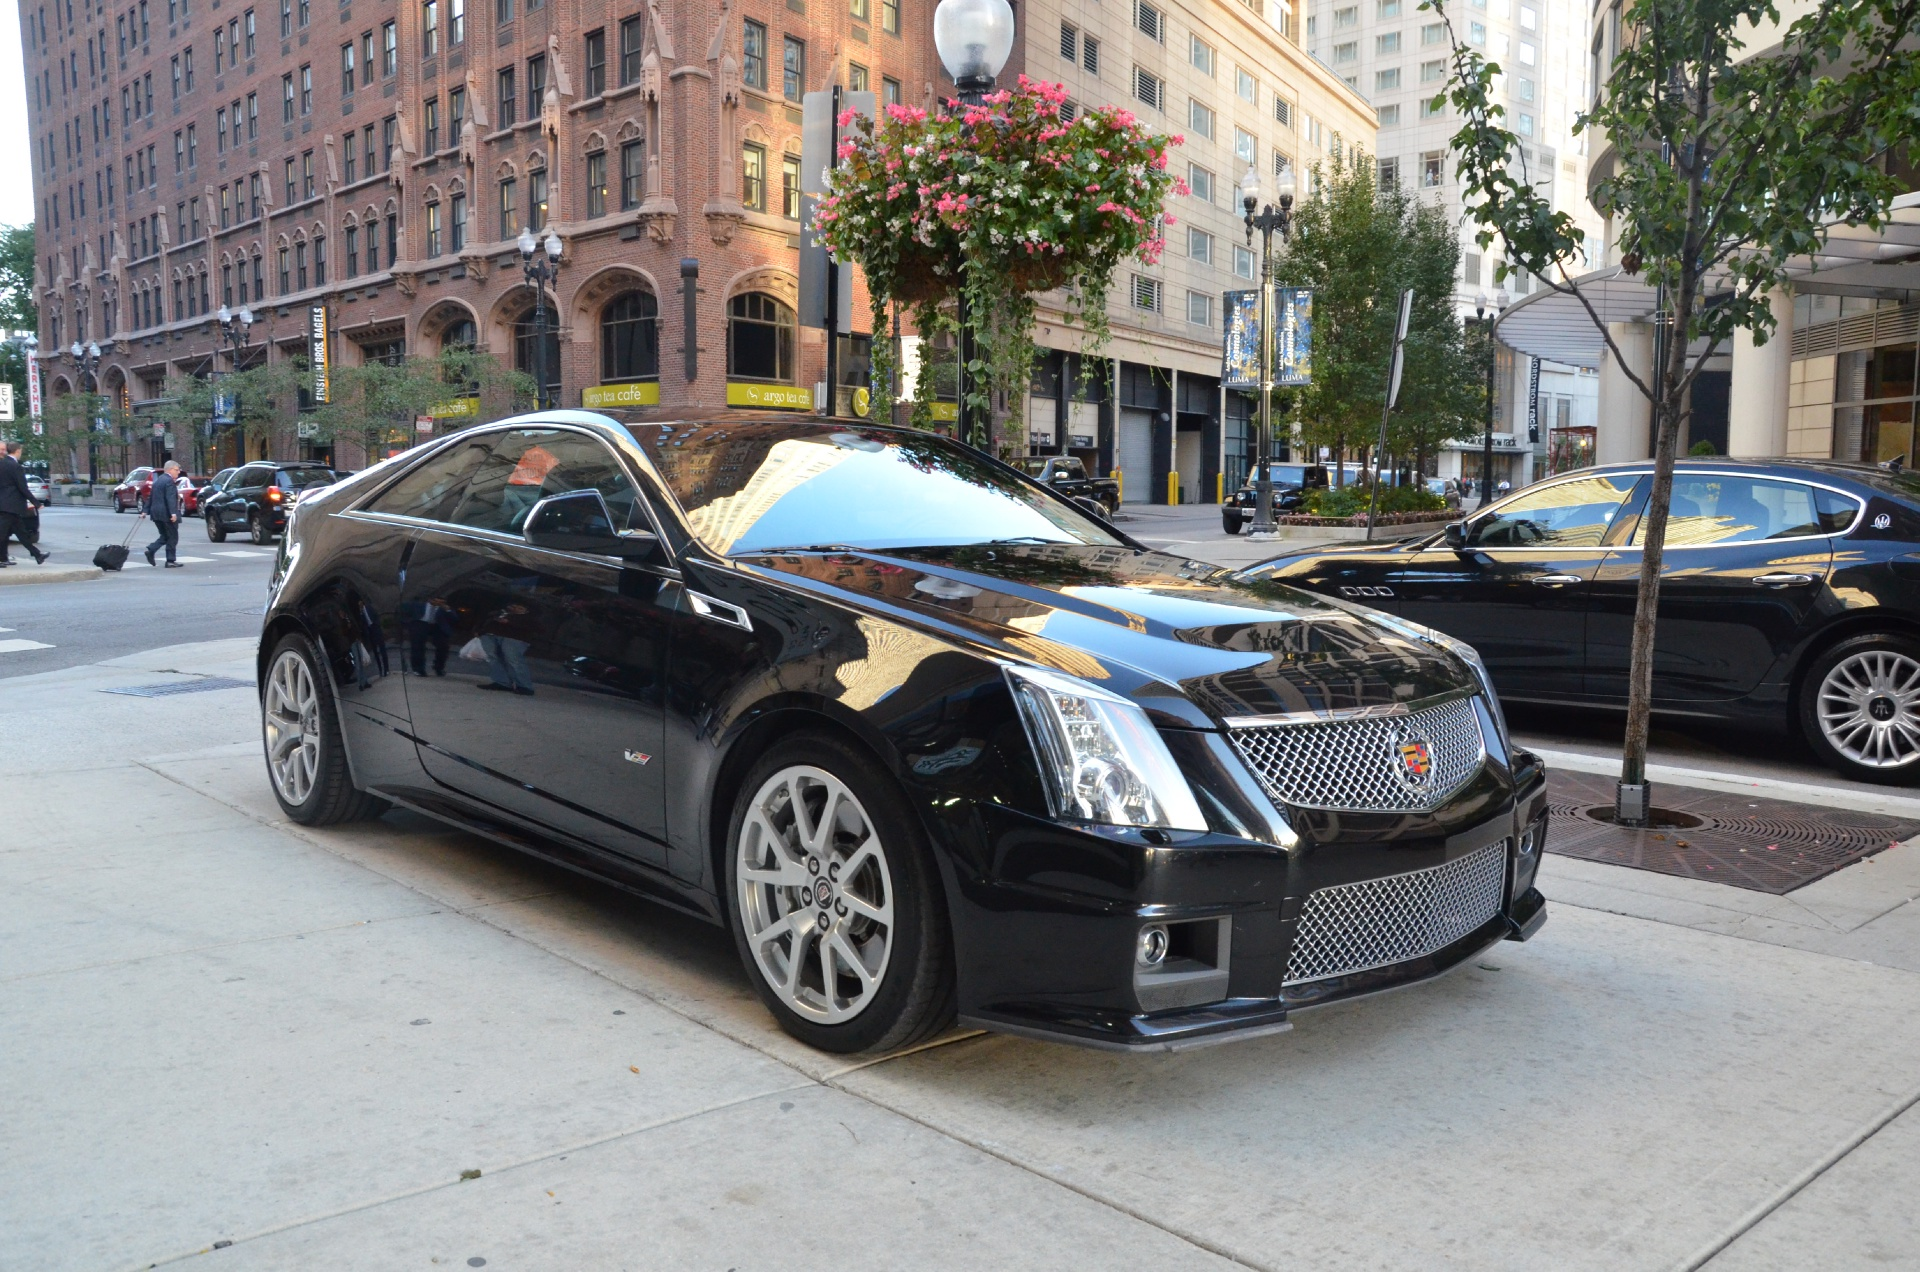 2011 cadillac cts v stock gc1117b for sale near chicago il il cadillac dealer. Black Bedroom Furniture Sets. Home Design Ideas